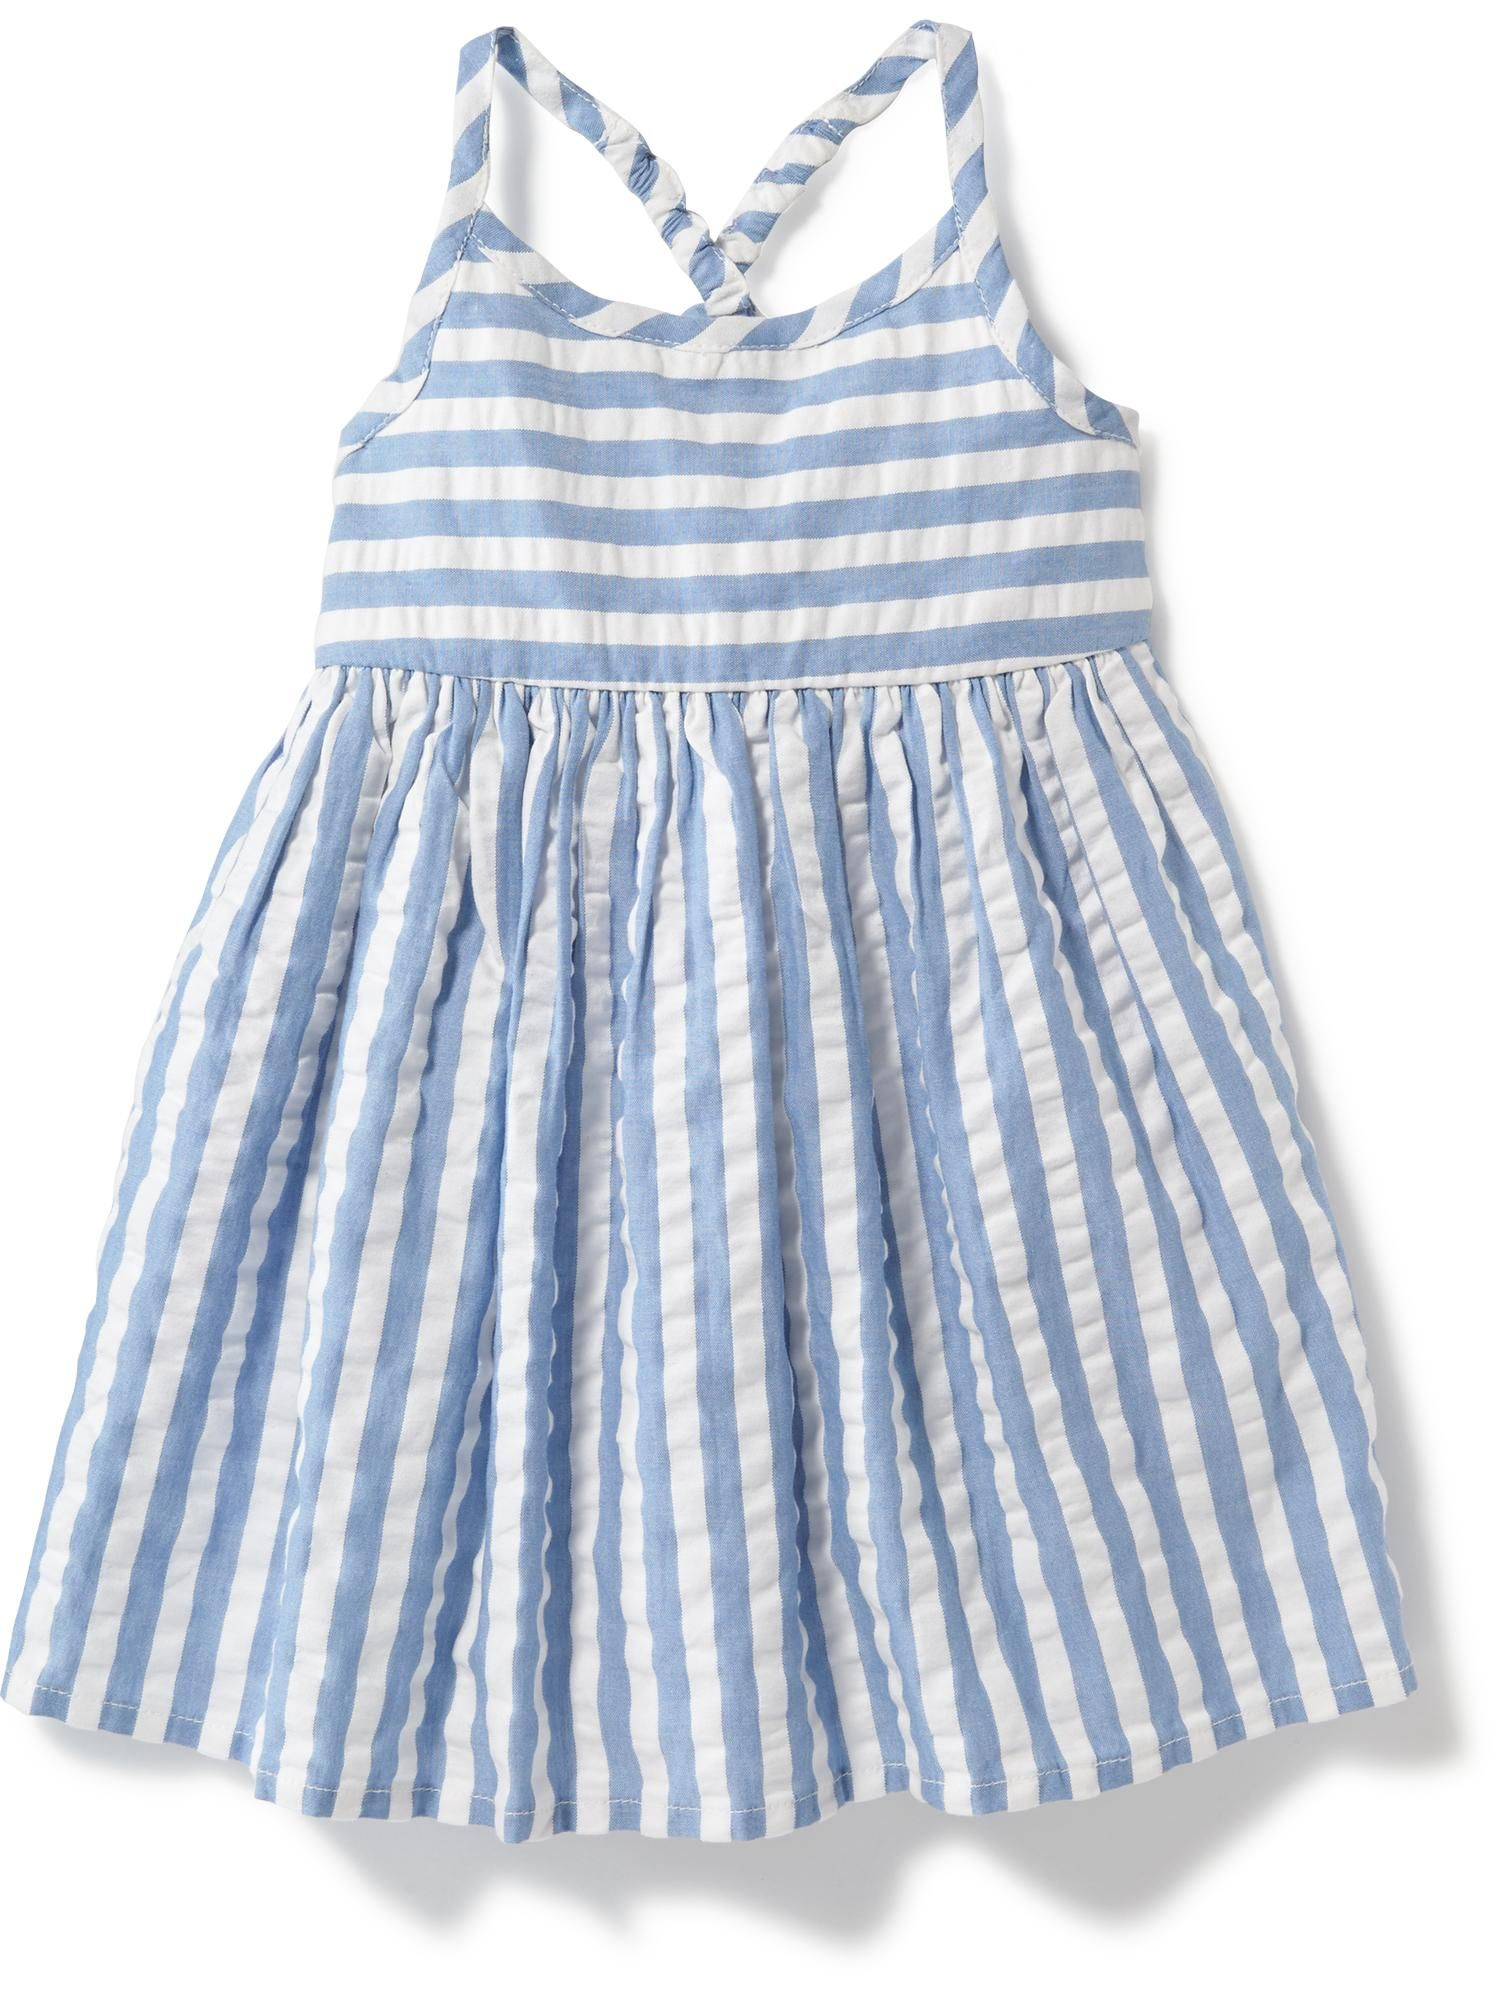 Cross Back Striped Seersucker Dress for Baby Old Navy